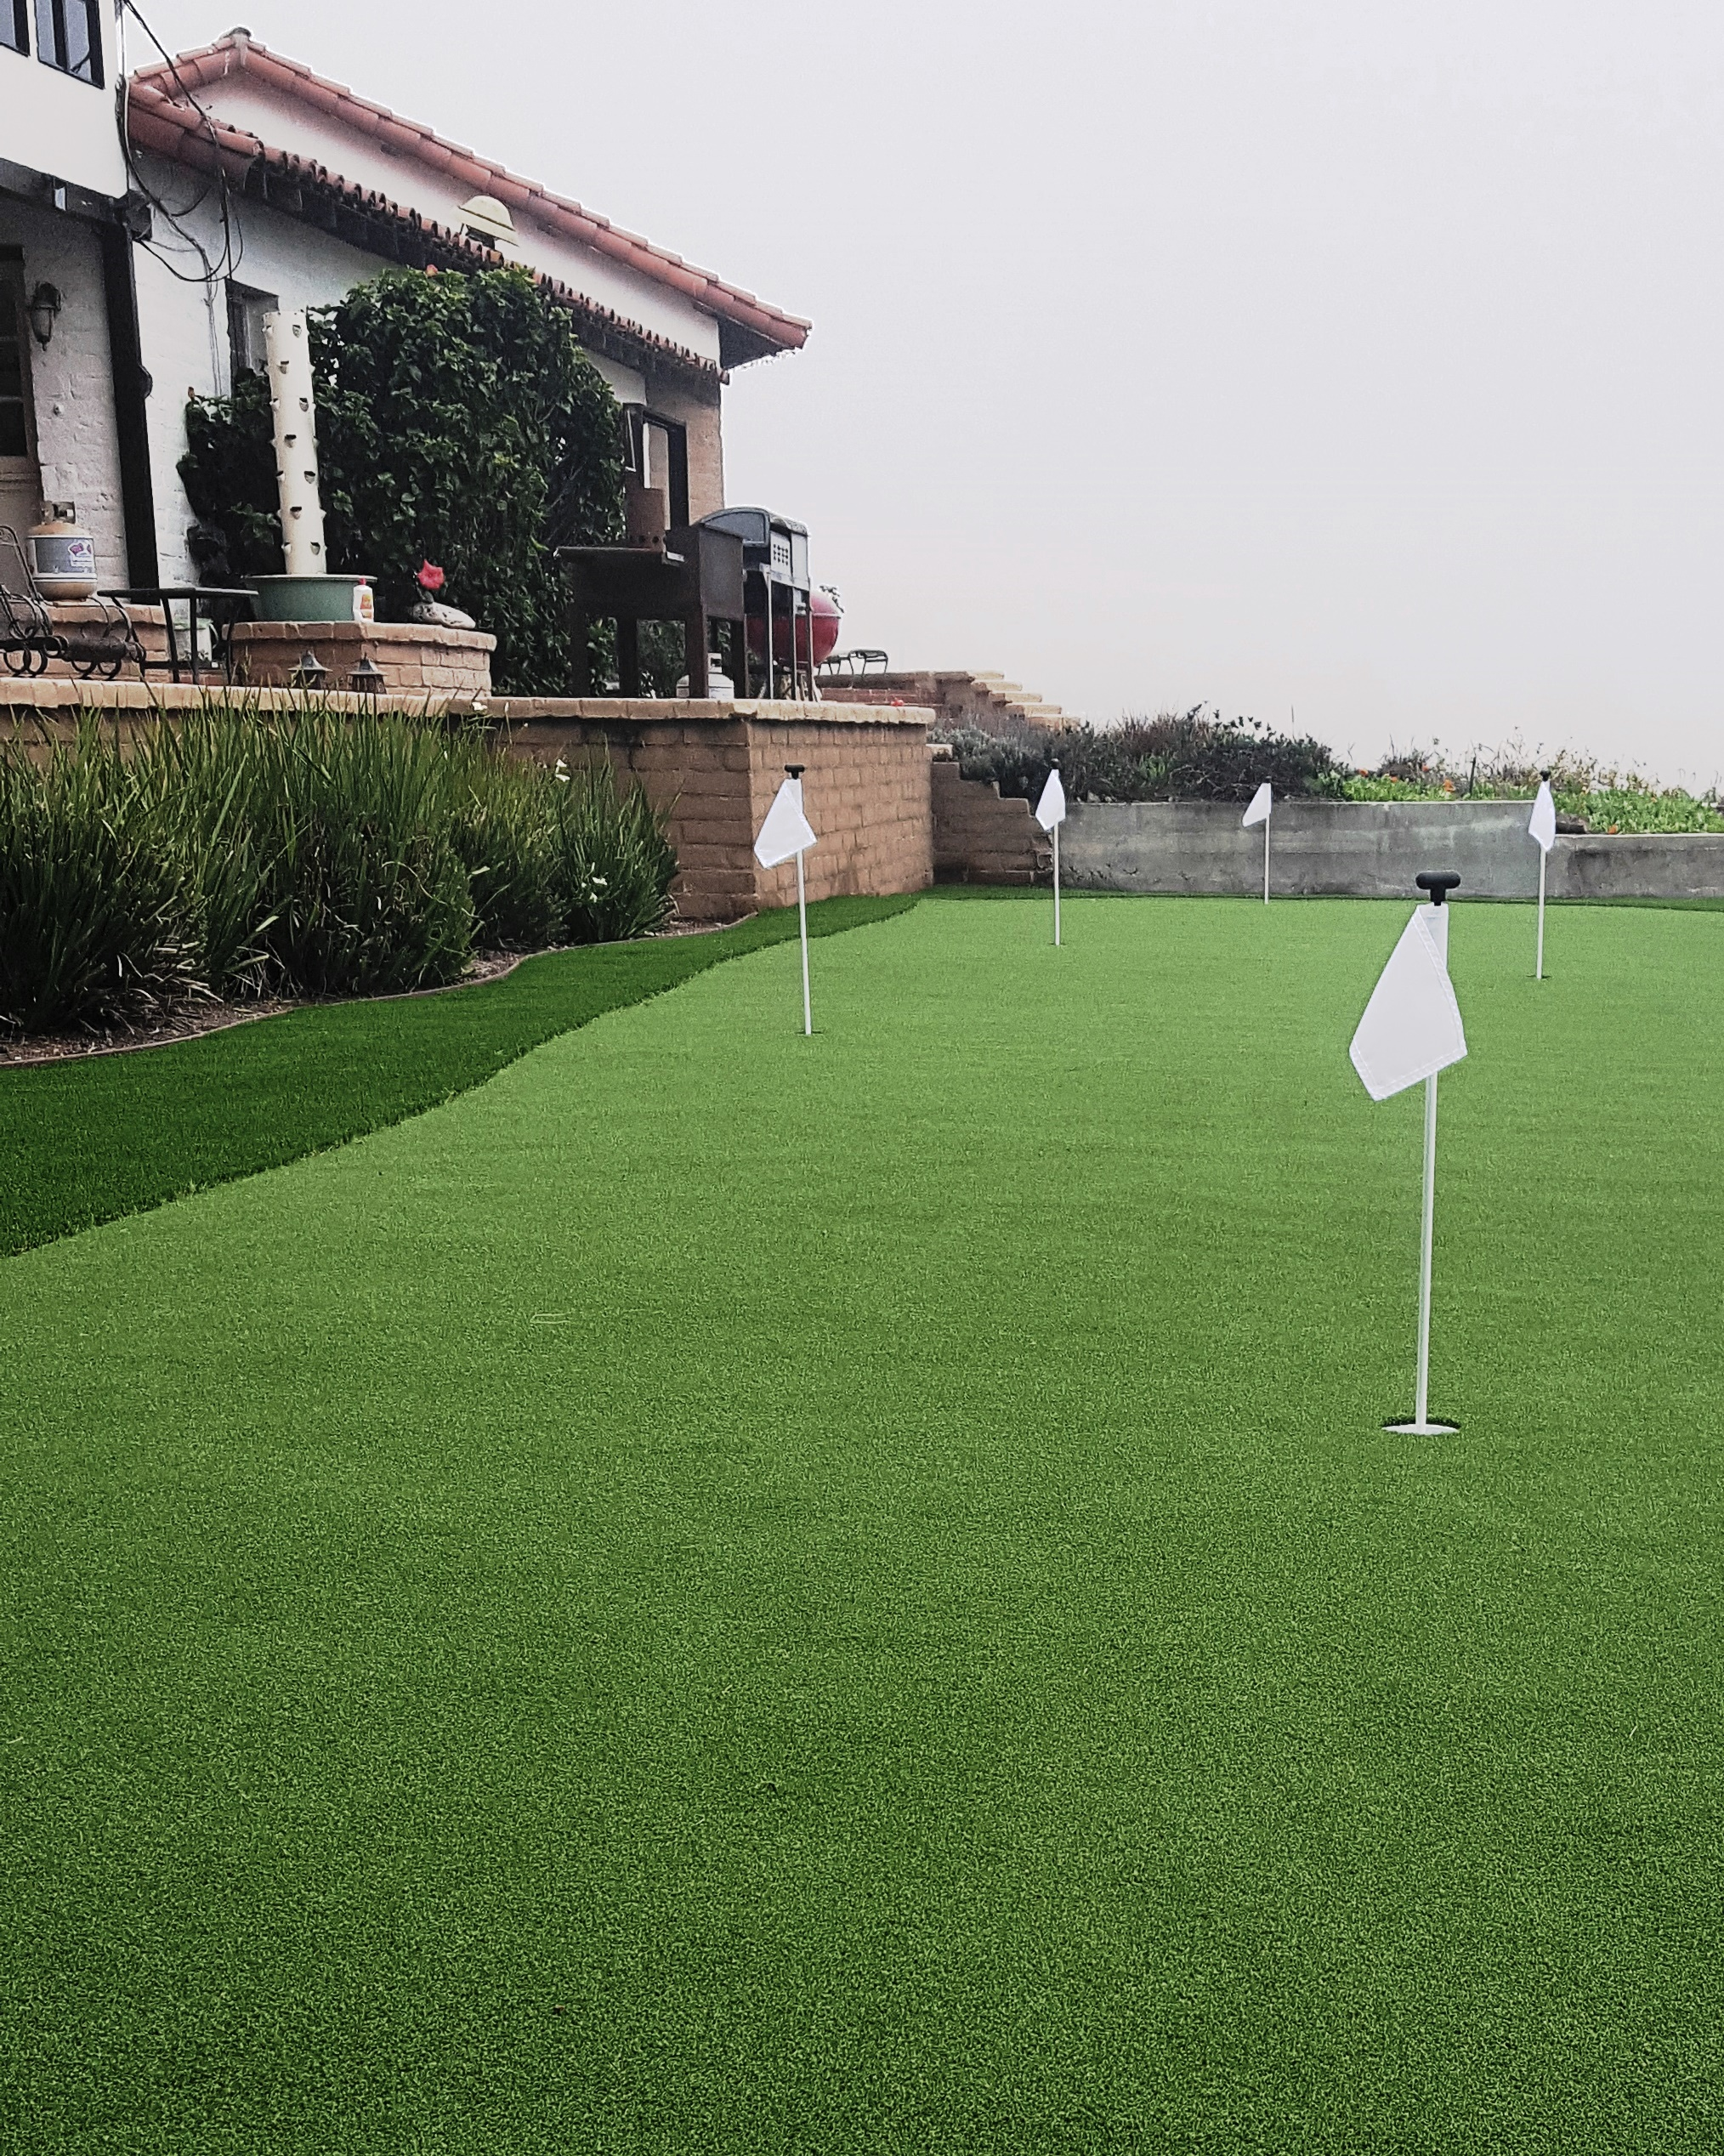 30' X 28' Putting Green Kit #10